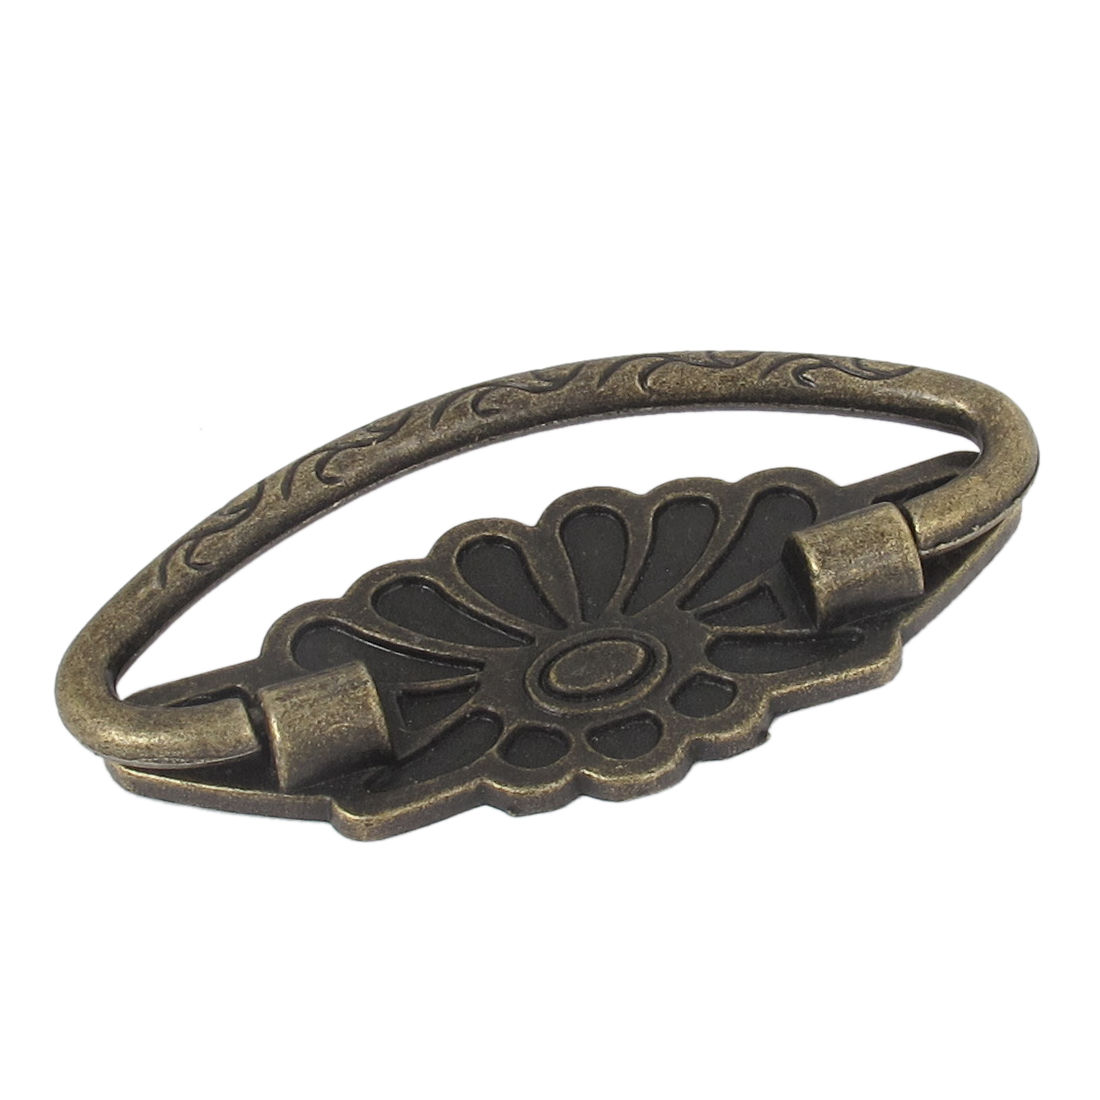 Vintage Style Arch Grip Ring Dresser Drawer Pull Handle Bronze Tone - image 1 of 3